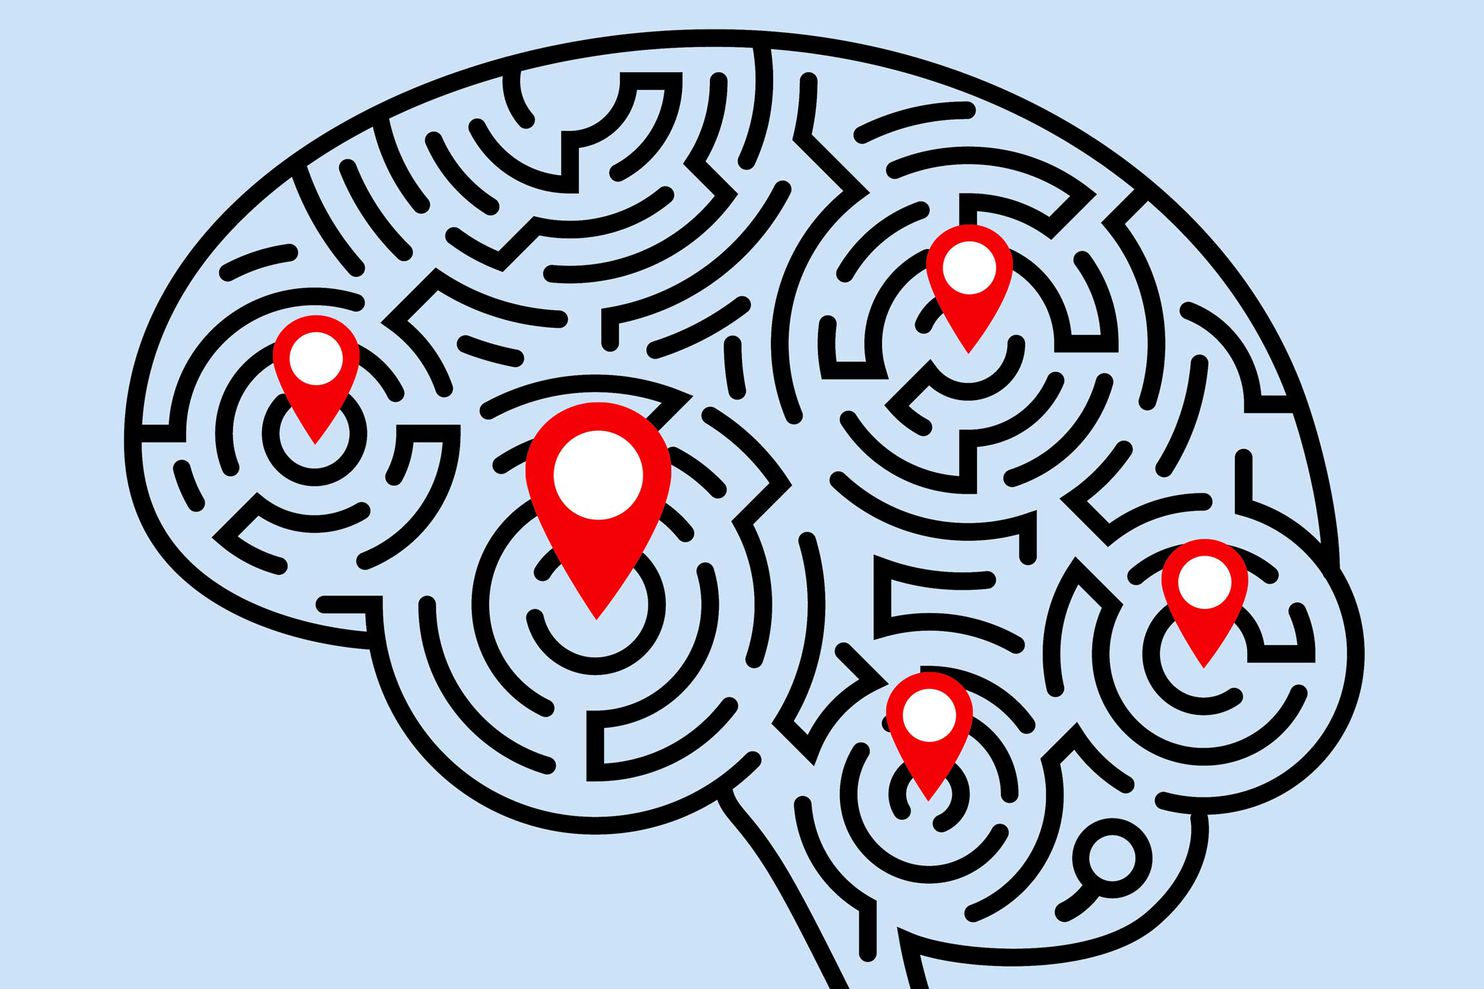 Ditch the GPS. It's ruining your brain.